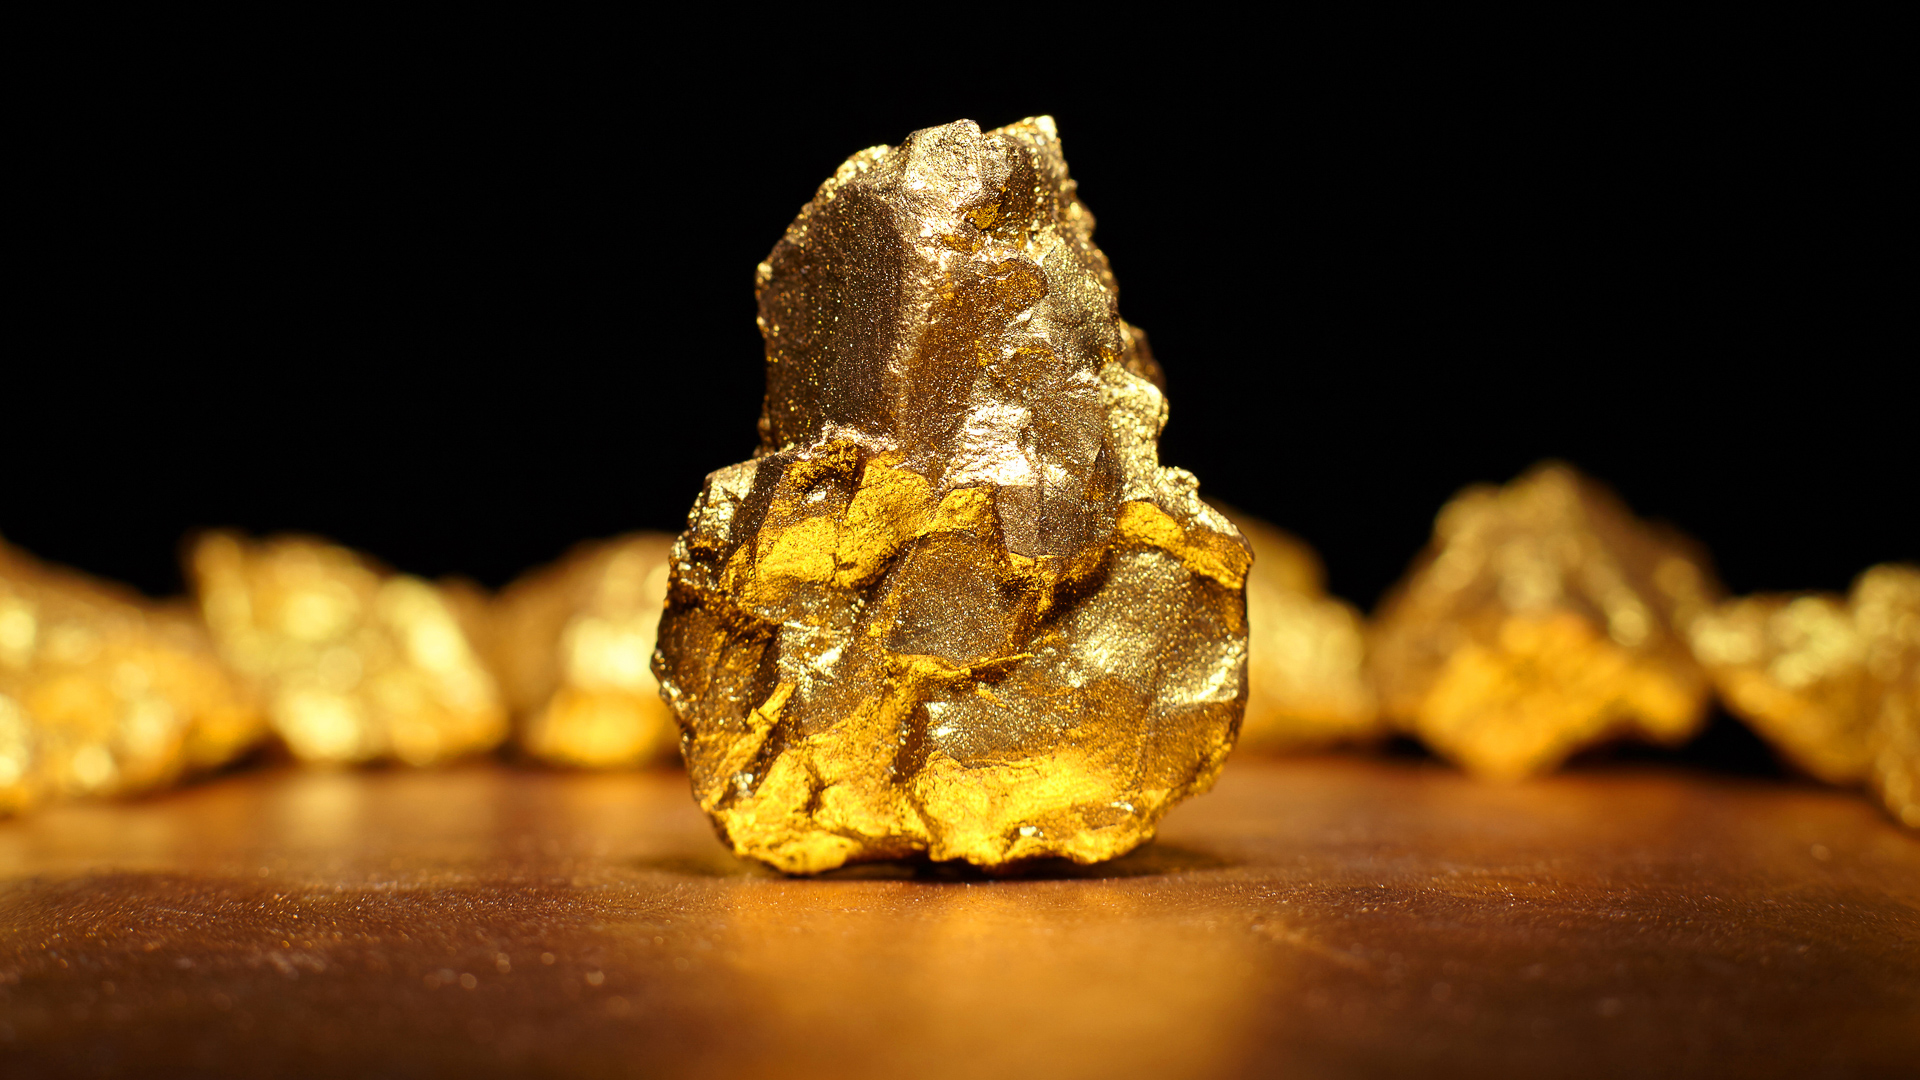 gold rock commodity